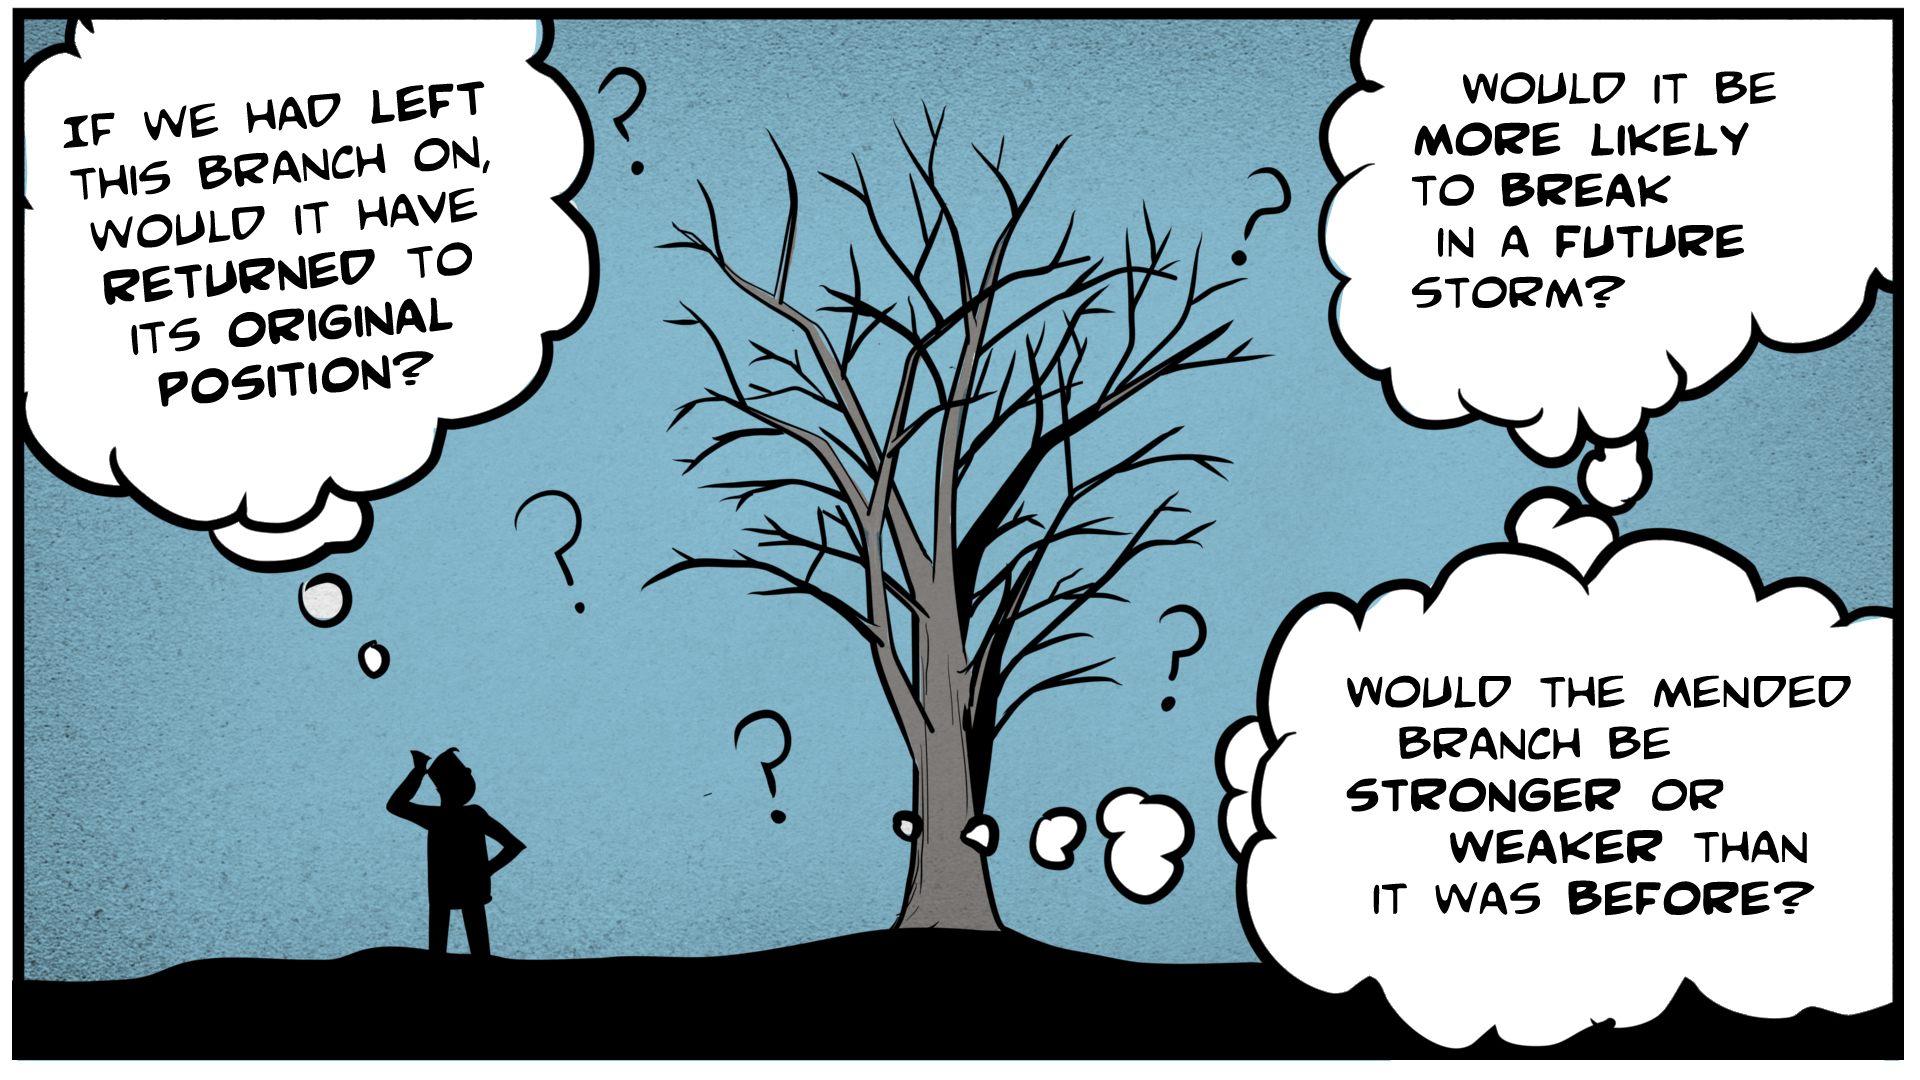 """Danny, in silhouette, stands next to a tree, scratching his head. He thinks, """"If we had left this branch on, would it have returned to its original position? Would it be more likely to break in a future storm? Would the mended branch be stronger or weaker than it was before?"""